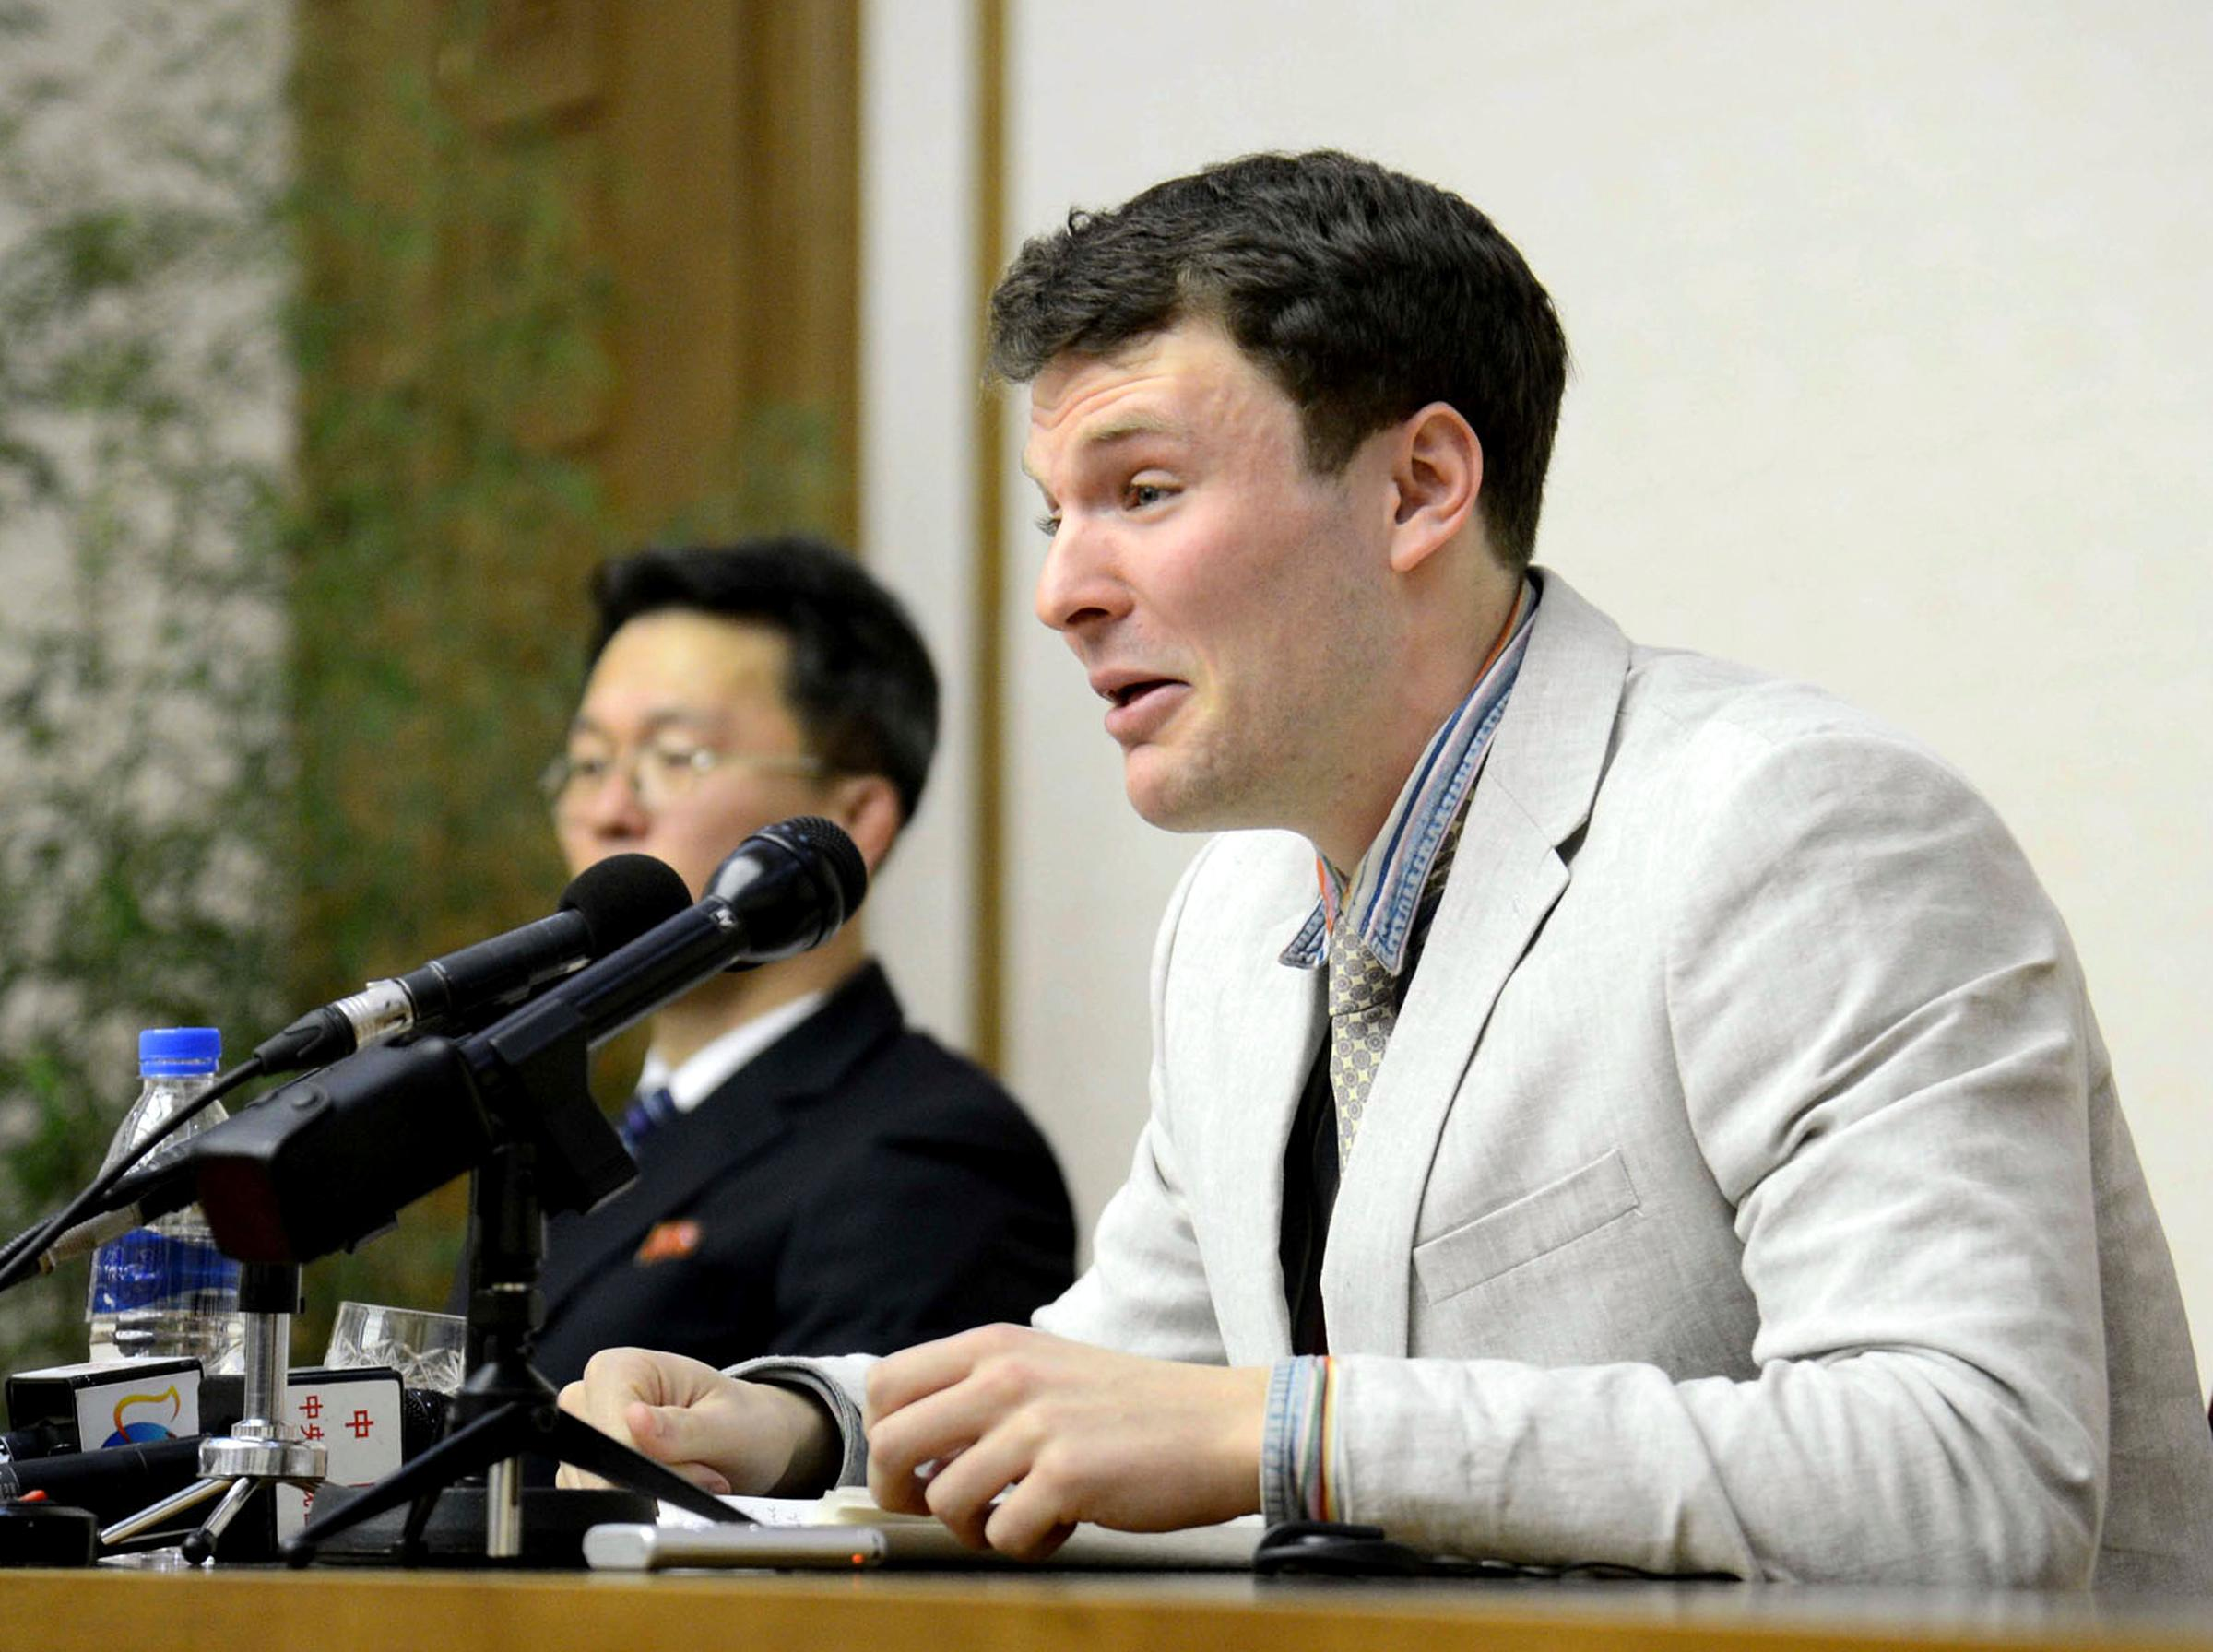 "In this Feb. 29, 2016, photo, American student Otto Warmbier cries while speaking to reporters in Pyongyang, North Korea. The family of Warmbier who died days after being released from North Korea in a coma says the 22-year-old ""has completed his journey home."" Warmbier died Monday, June 19, 2017, relatives said in a statement. He arrived in Ohio on June 13, 2017, after being held for more than 17 months. (Korean Central News Agency/Korea News Service via AP)"